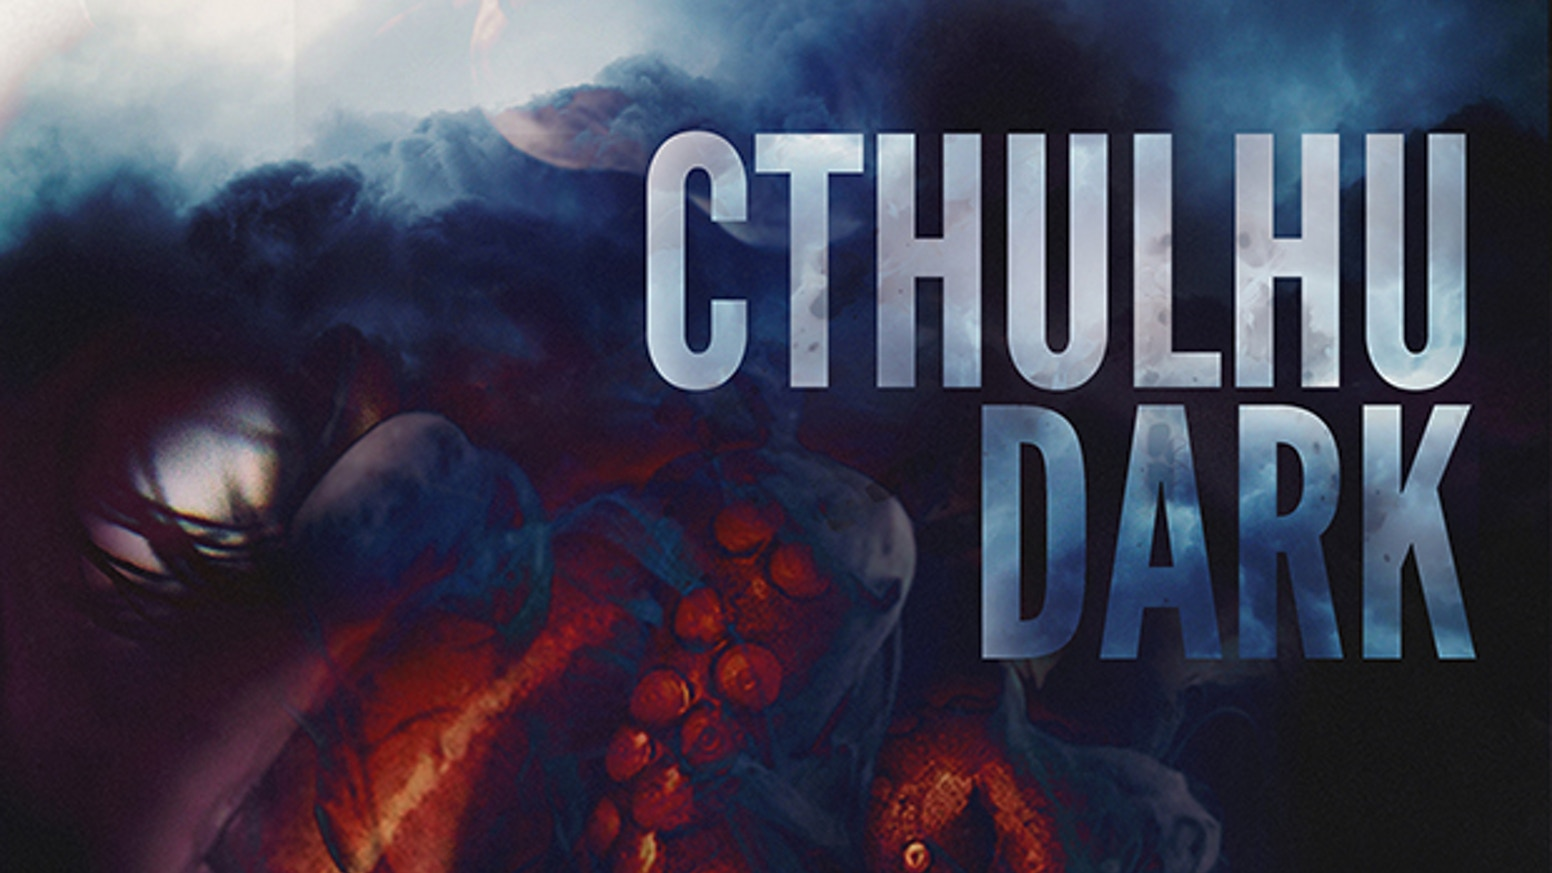 Cthulhu Dark is a tabletop roleplaying game of cosmic horror, with stripped-back rules that drive a bleak and terrifying story.